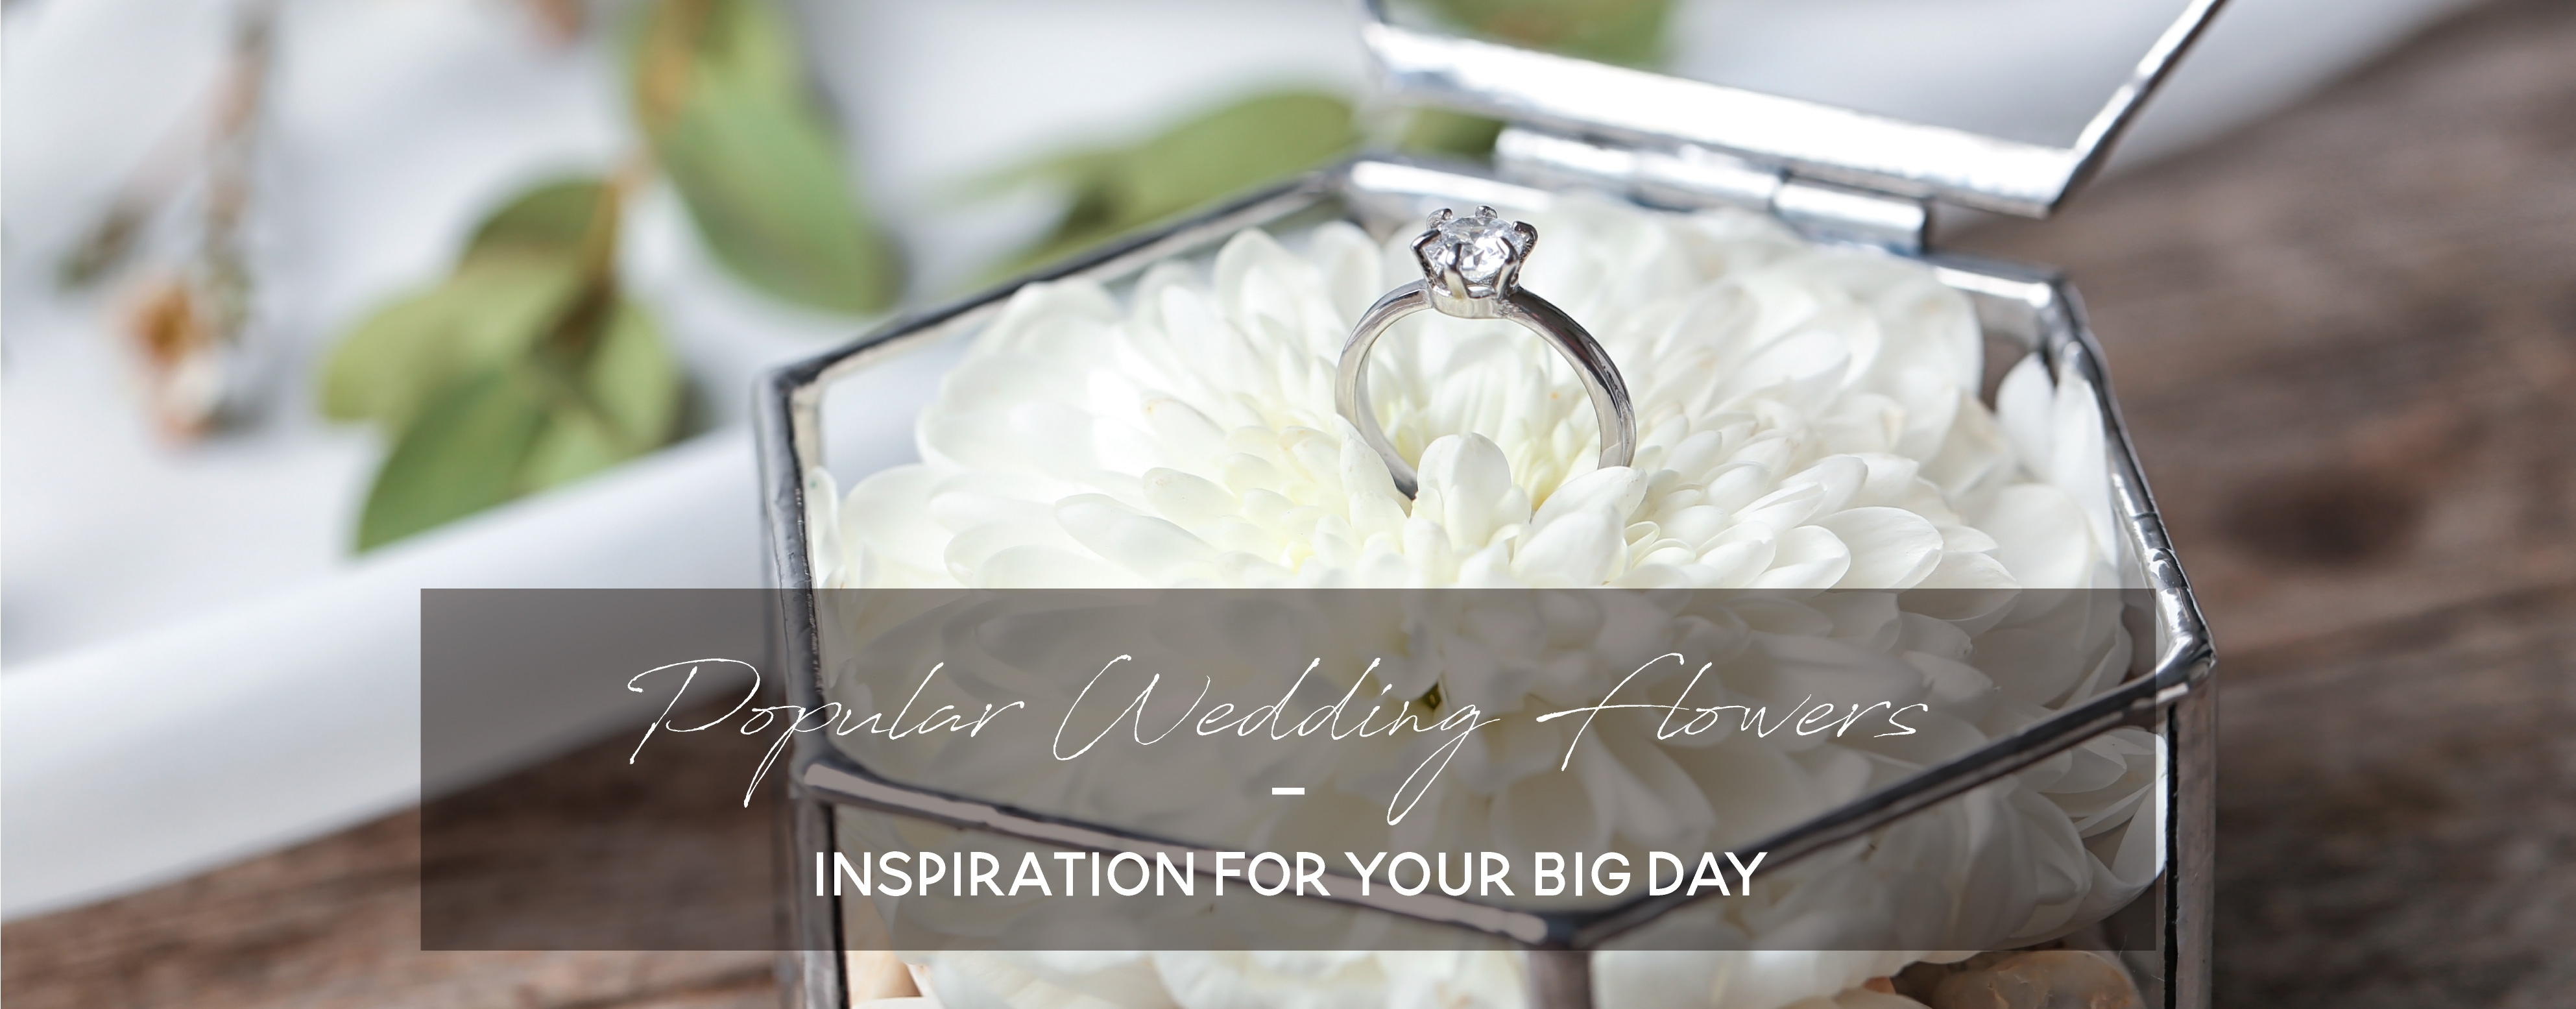 HPopular Wedding Flowers – Inspiration For Your Big Day